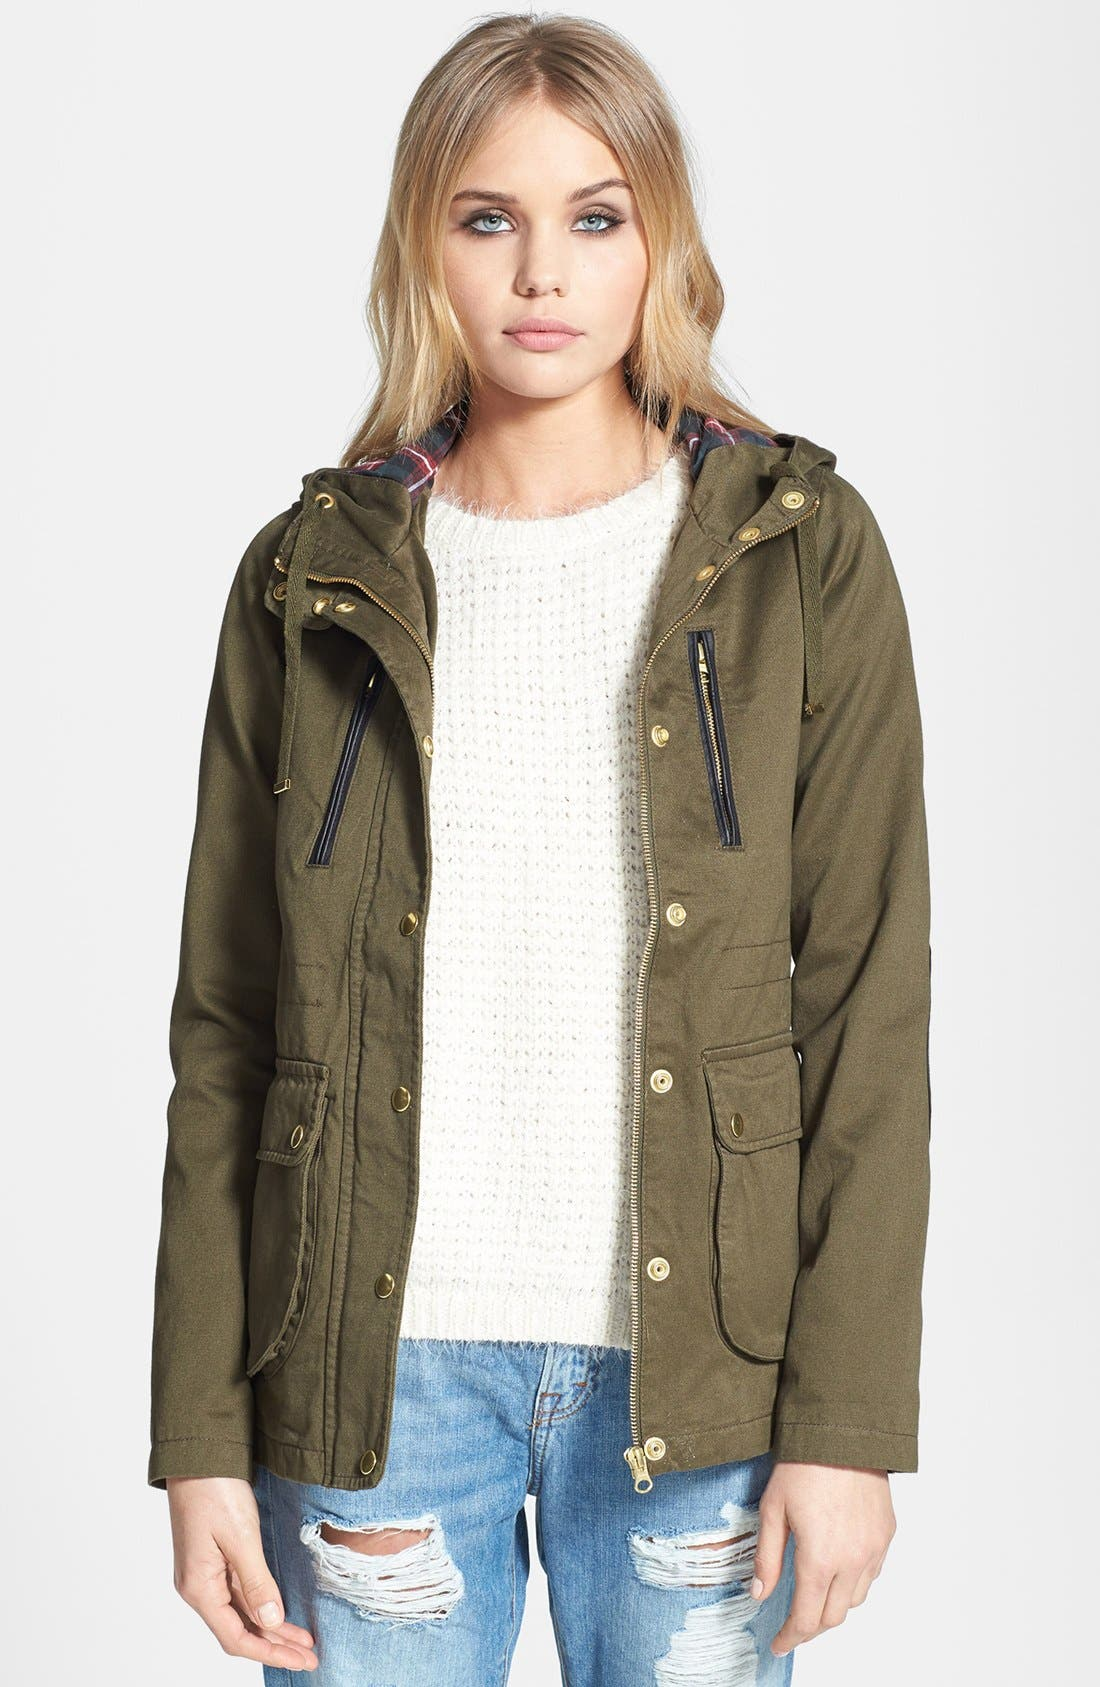 Alternate Image 1 Selected - Topshop 'Duke' Hooded Jacket